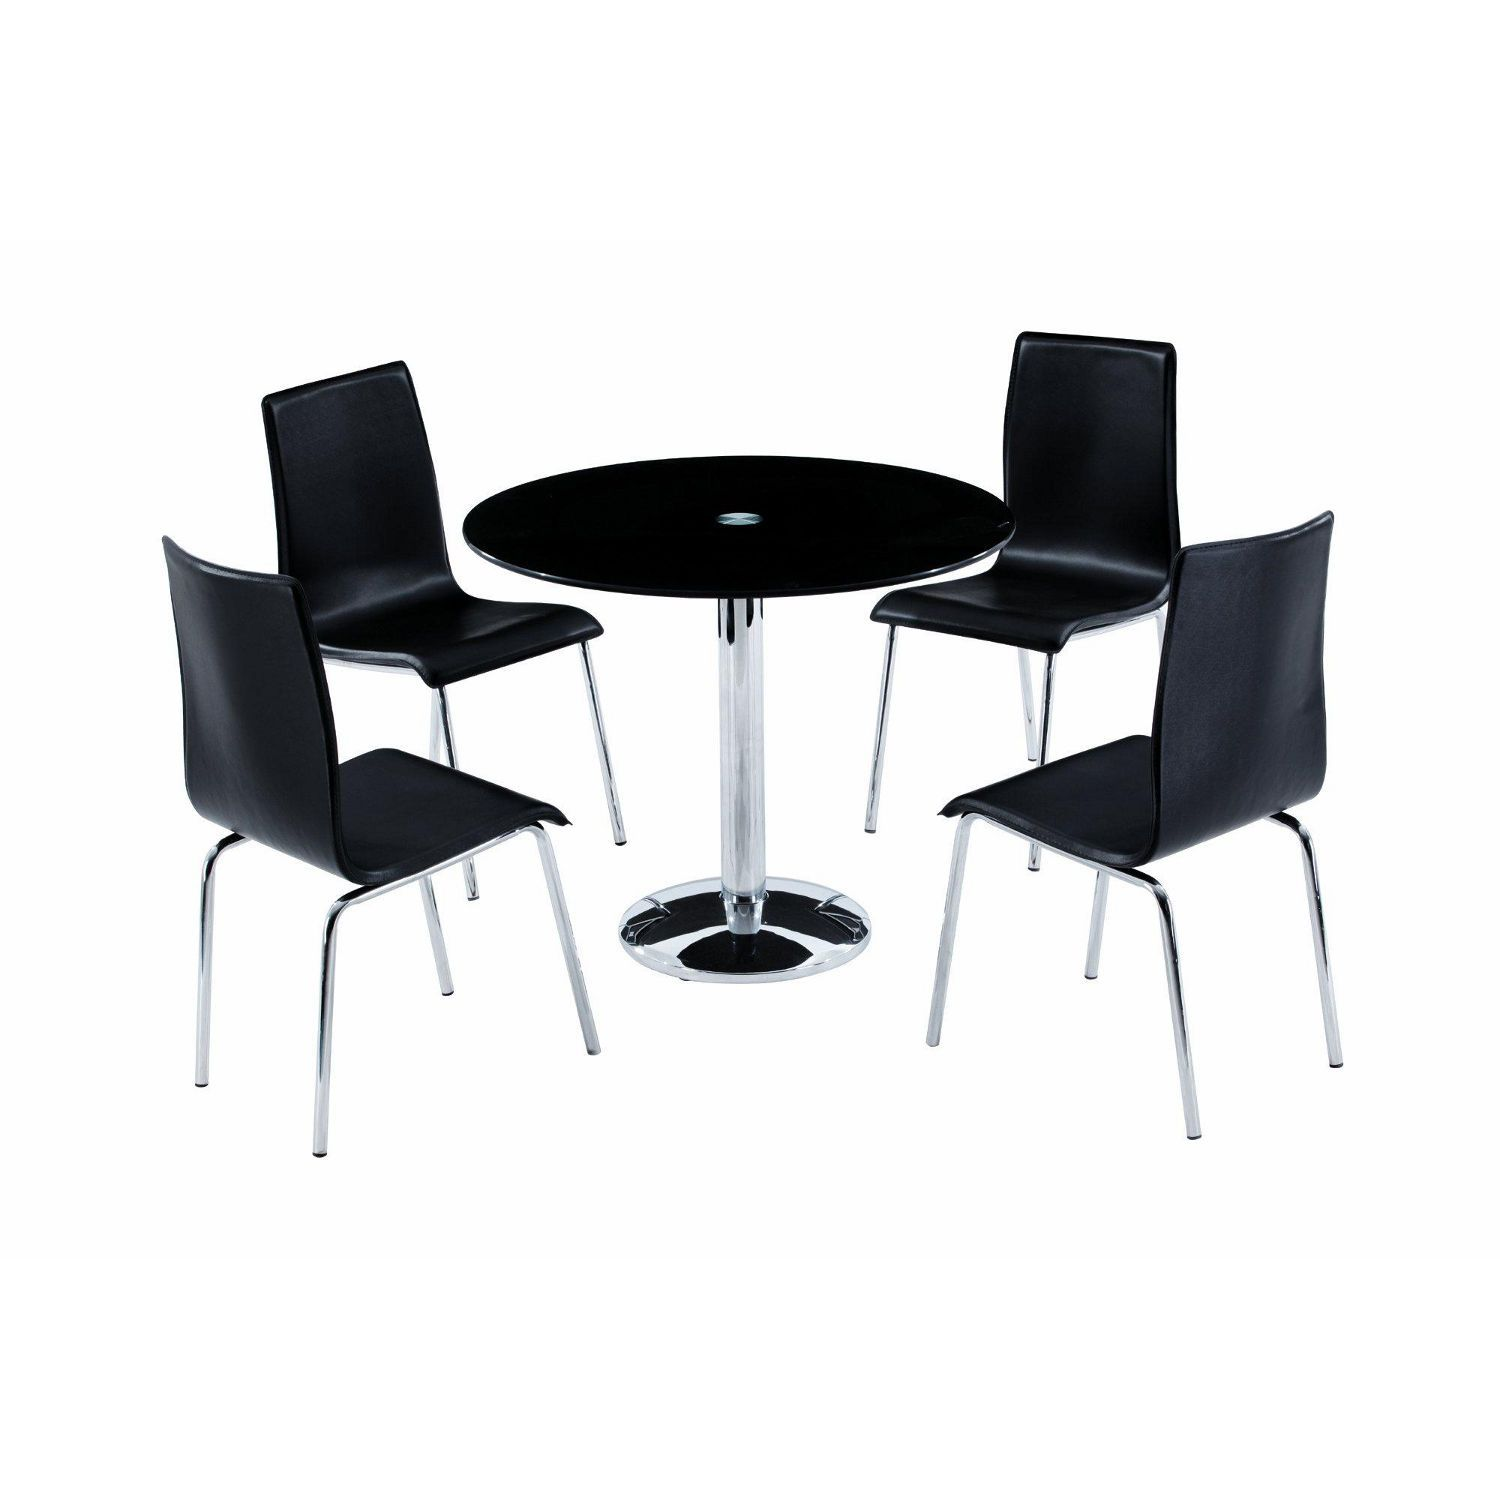 Charming Round Table With Chairs Part - 5: Round Black Glass Dining Table With Single Legs And Four Plastic Chairs